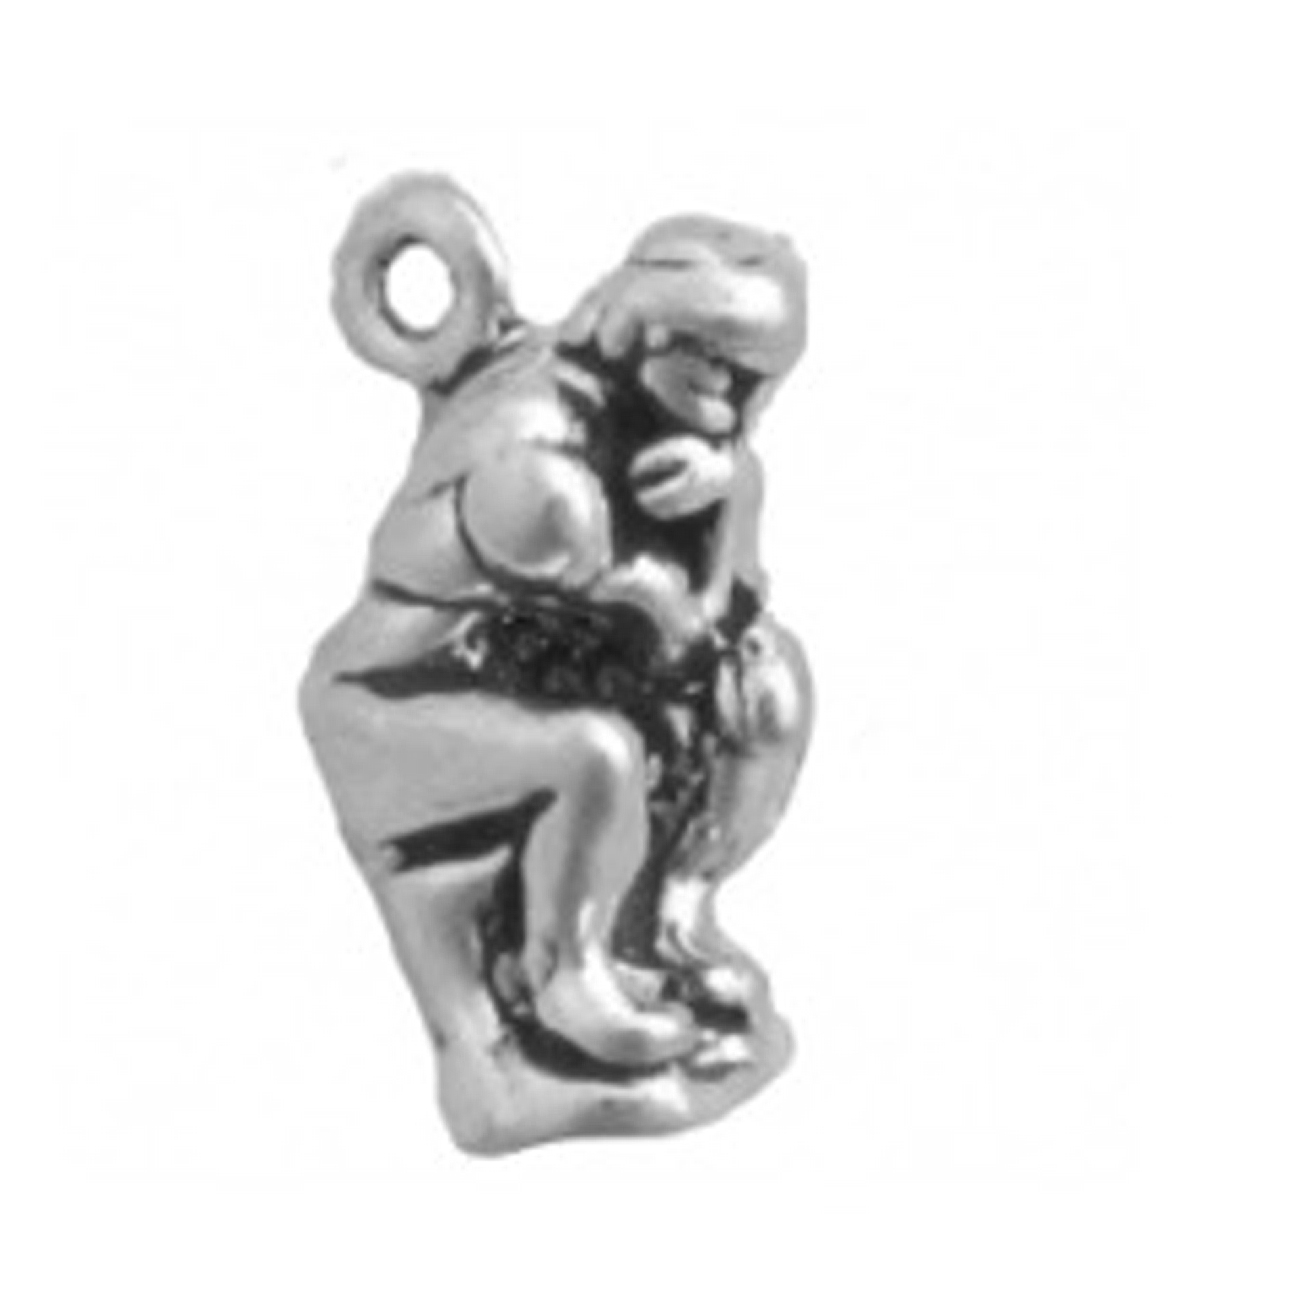 3D Auguste Rodin's The Thinker Or The Poet Statue Charm